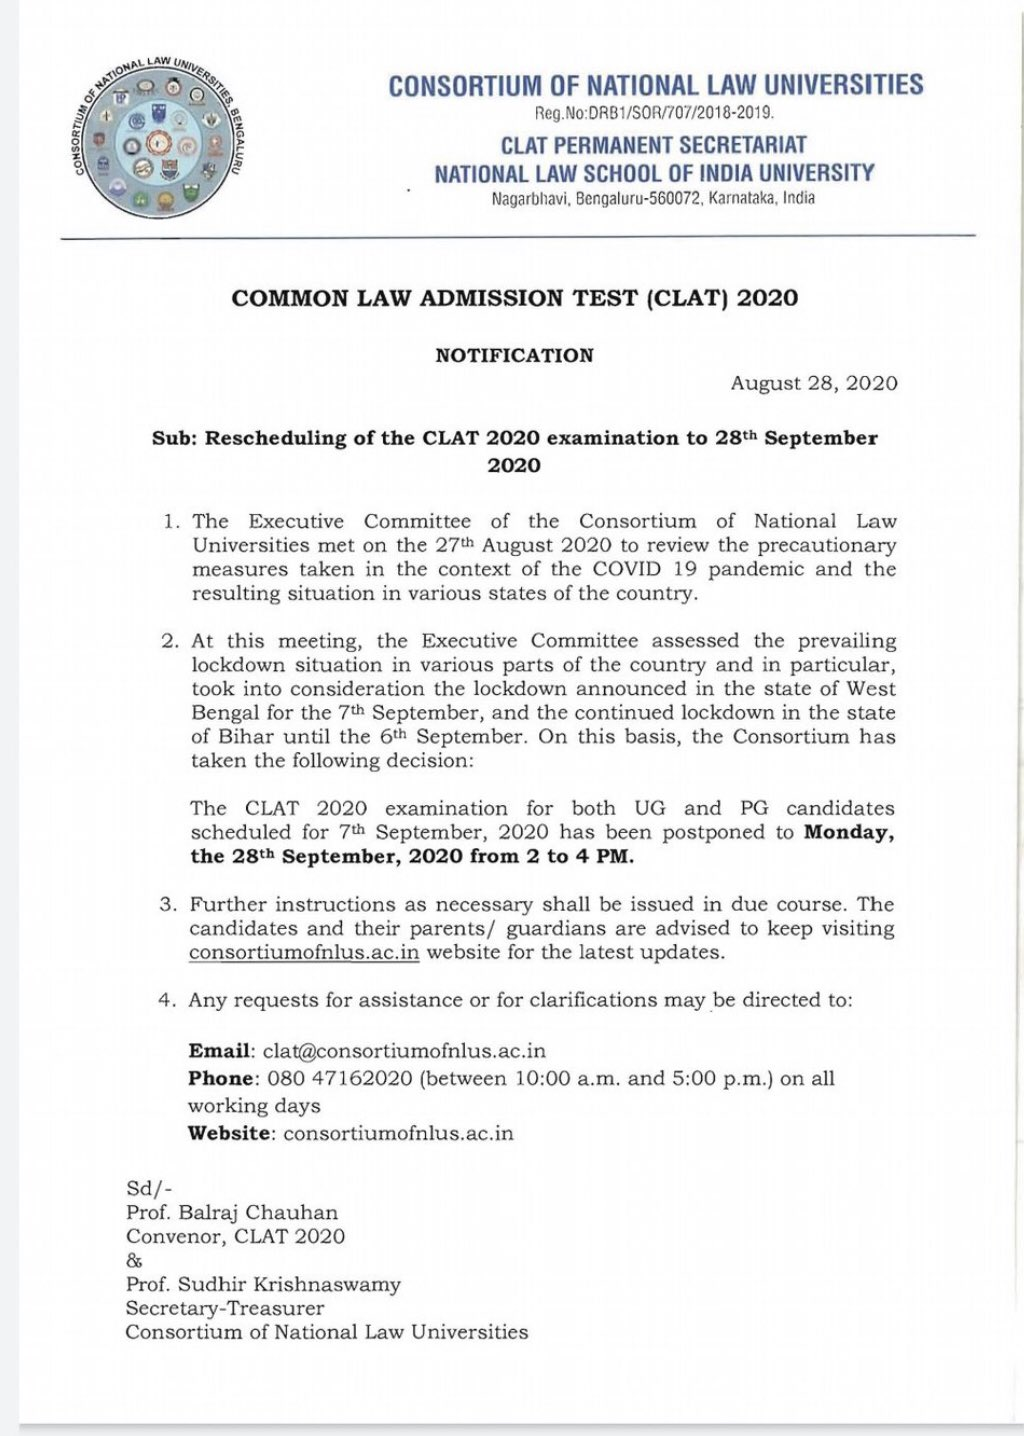 CLAT Exam 2020 has been officially postponed today